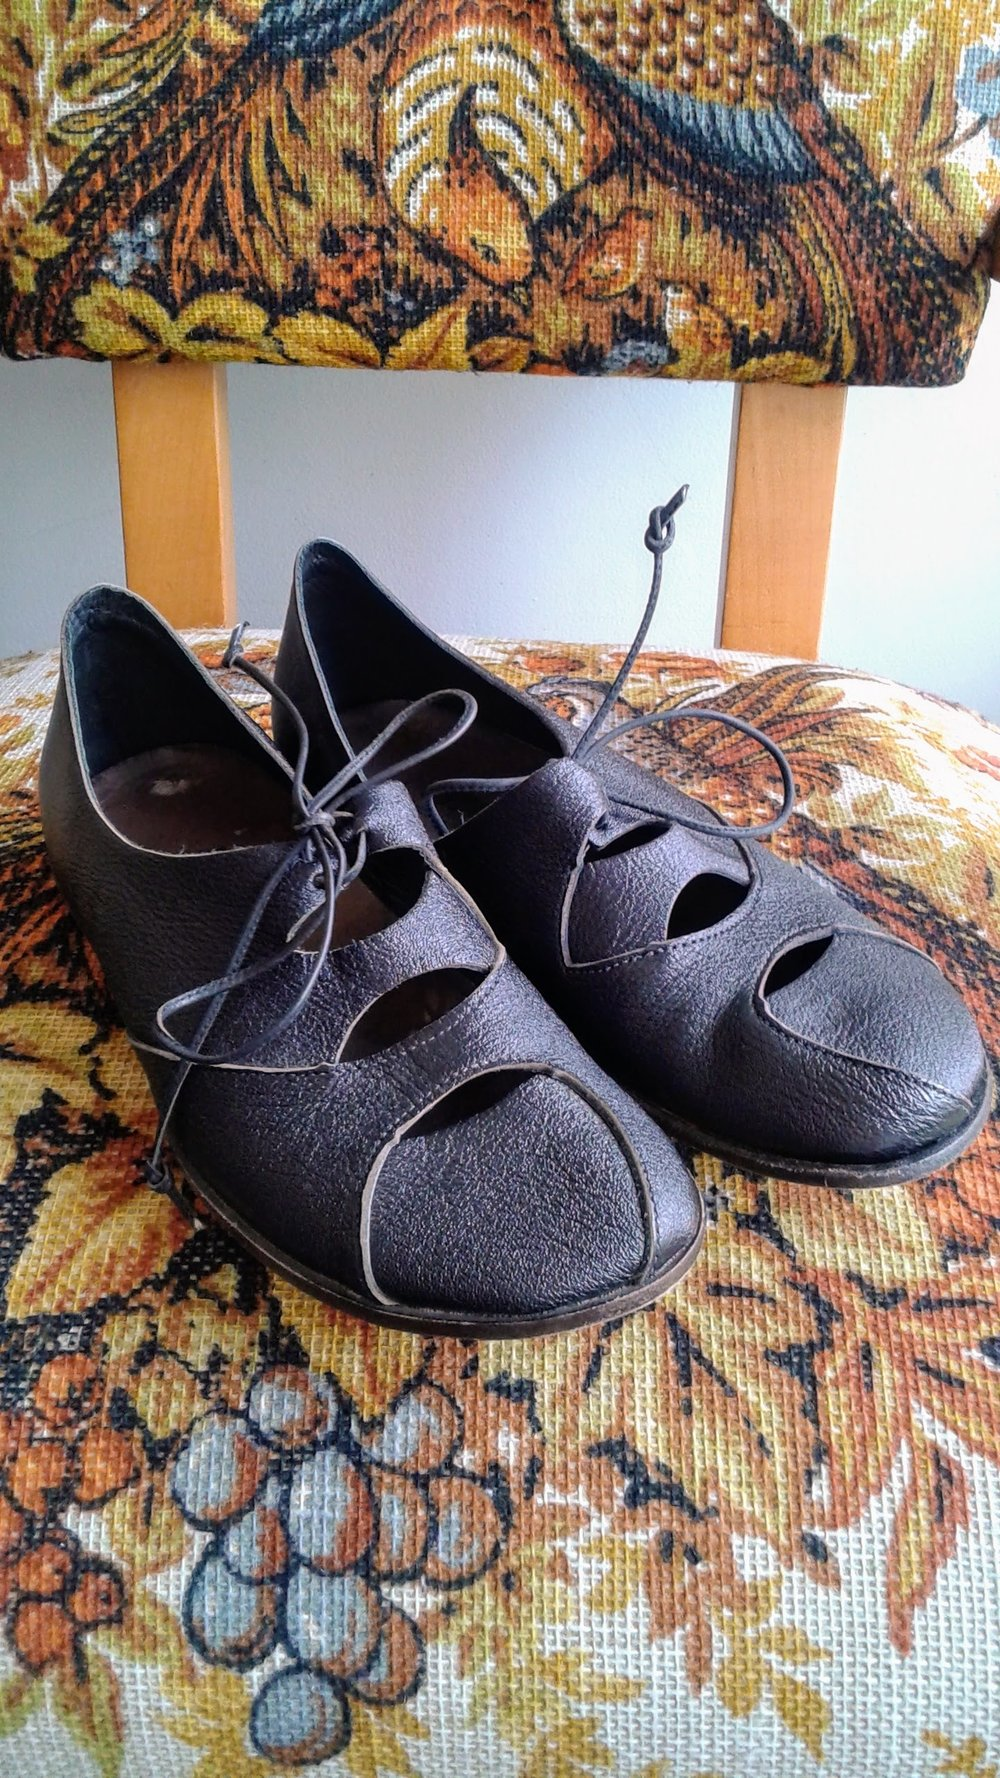 Cydwoq shoes (NWT); S6.5, $62